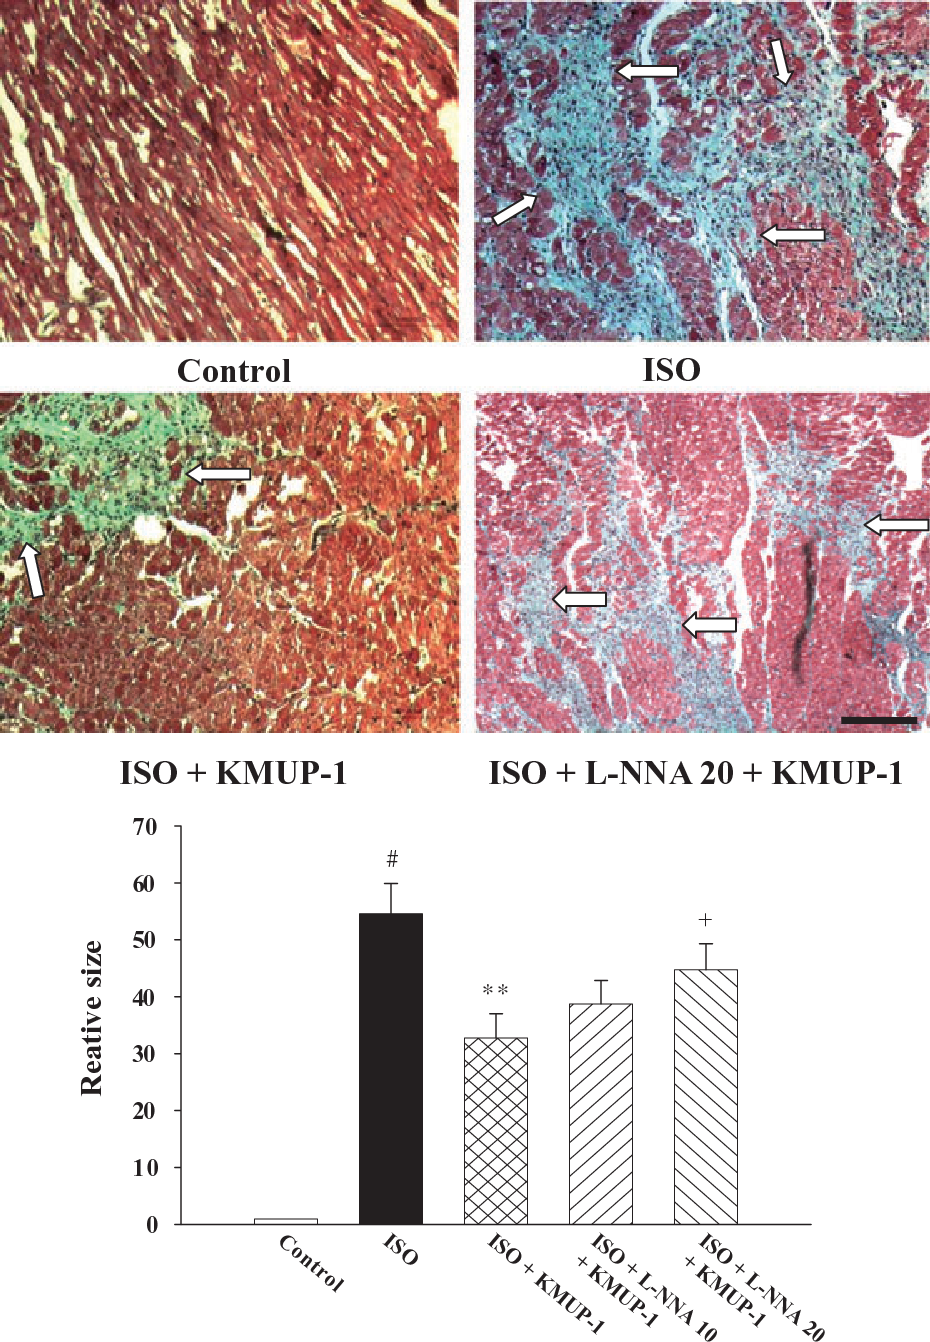 KMUP-1 attenuates isoprenaline-induced cardiac hypertrophy in rats